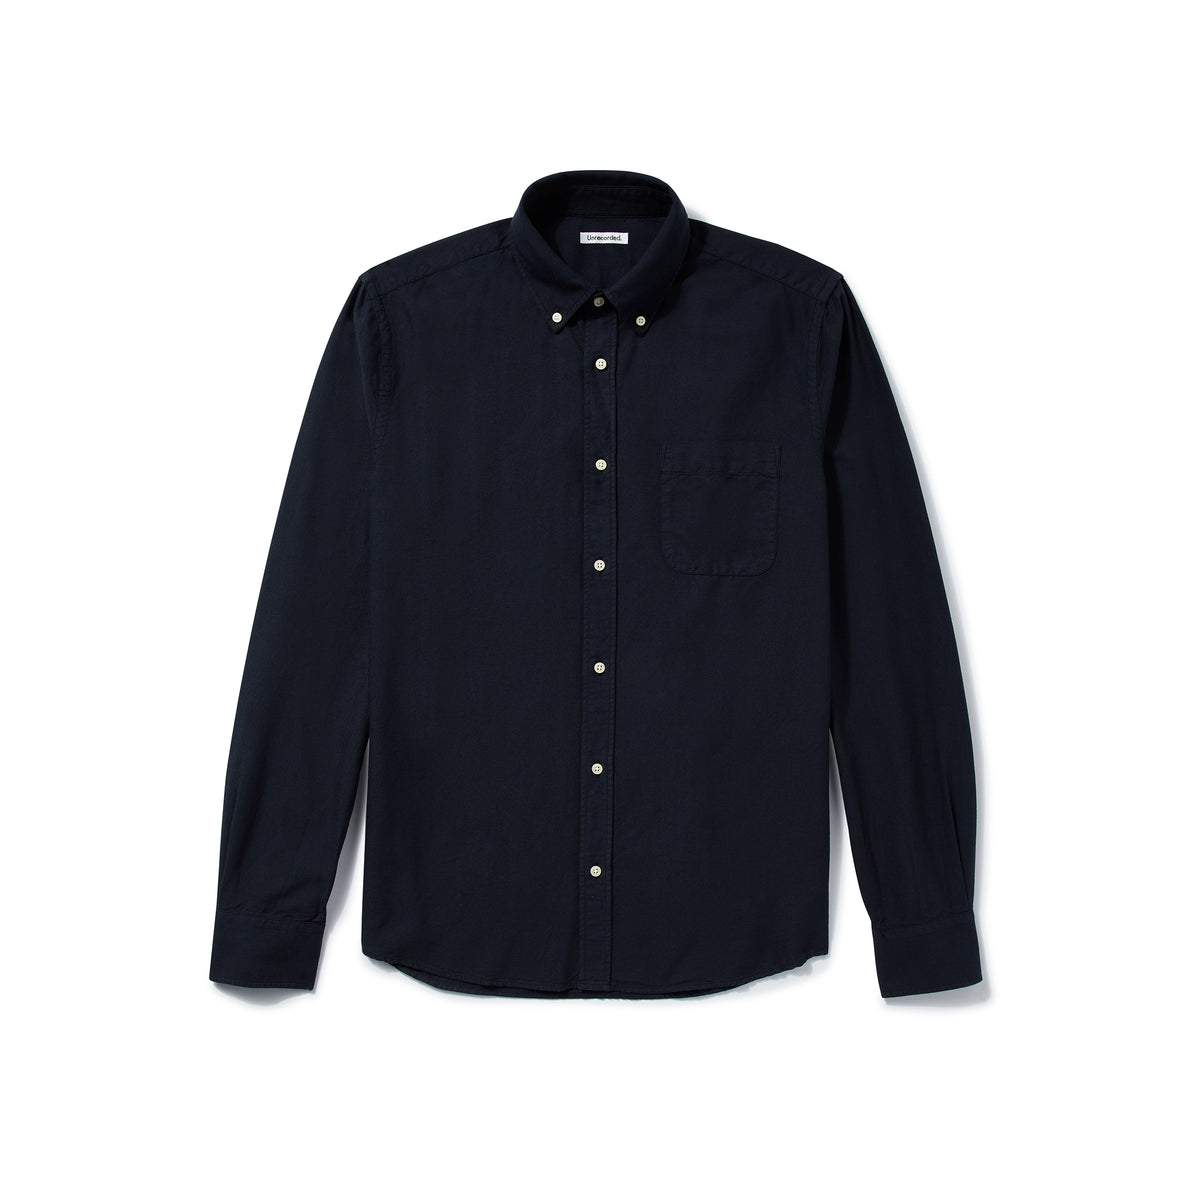 Oxford Shirt in Navy made from Organic Cotton - Alternate